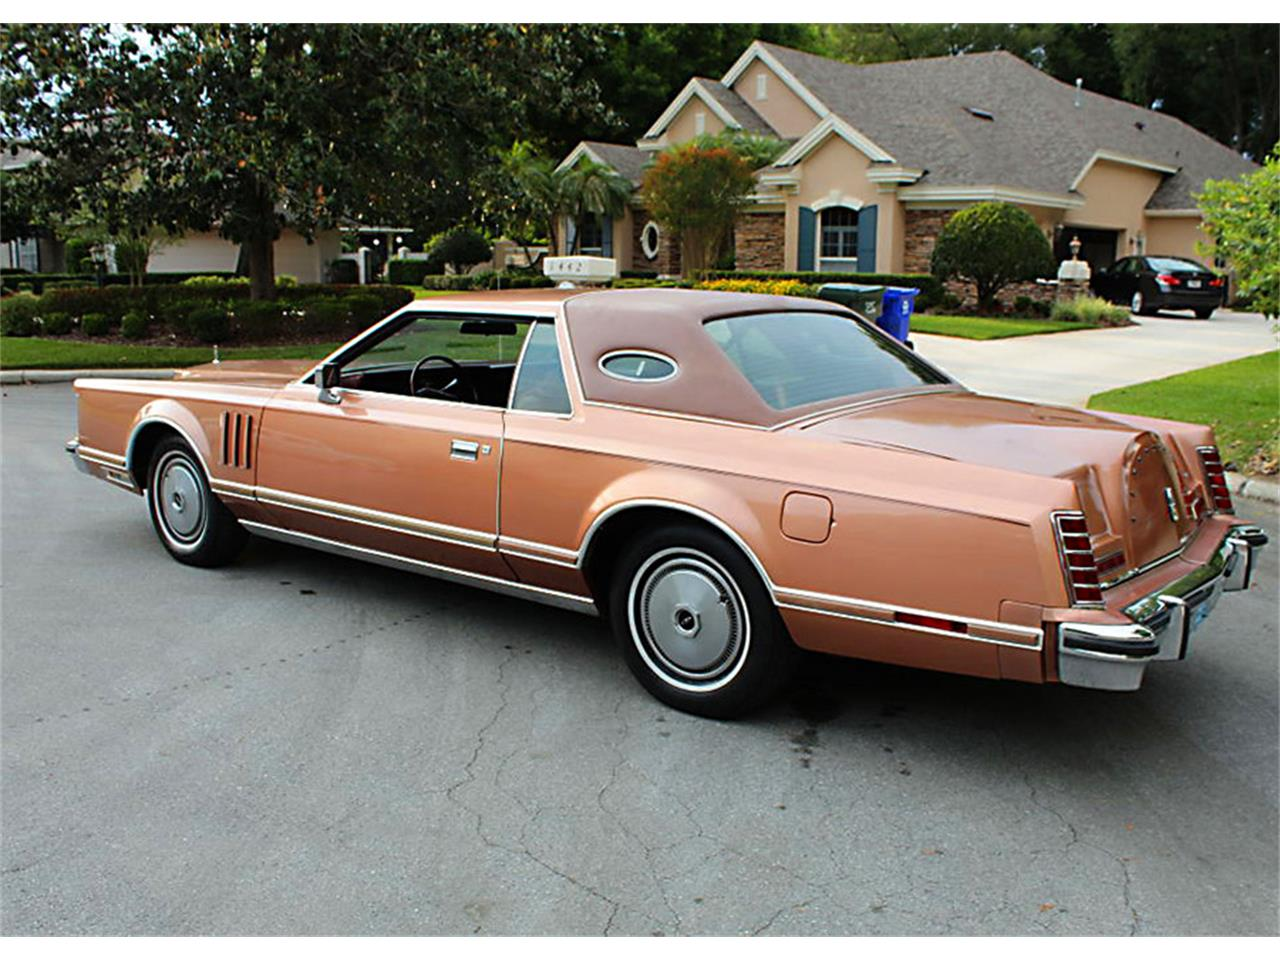 Large Picture of '78 Lincoln Mark V - $16,500.00 Offered by MJC Classic Cars - PUZN